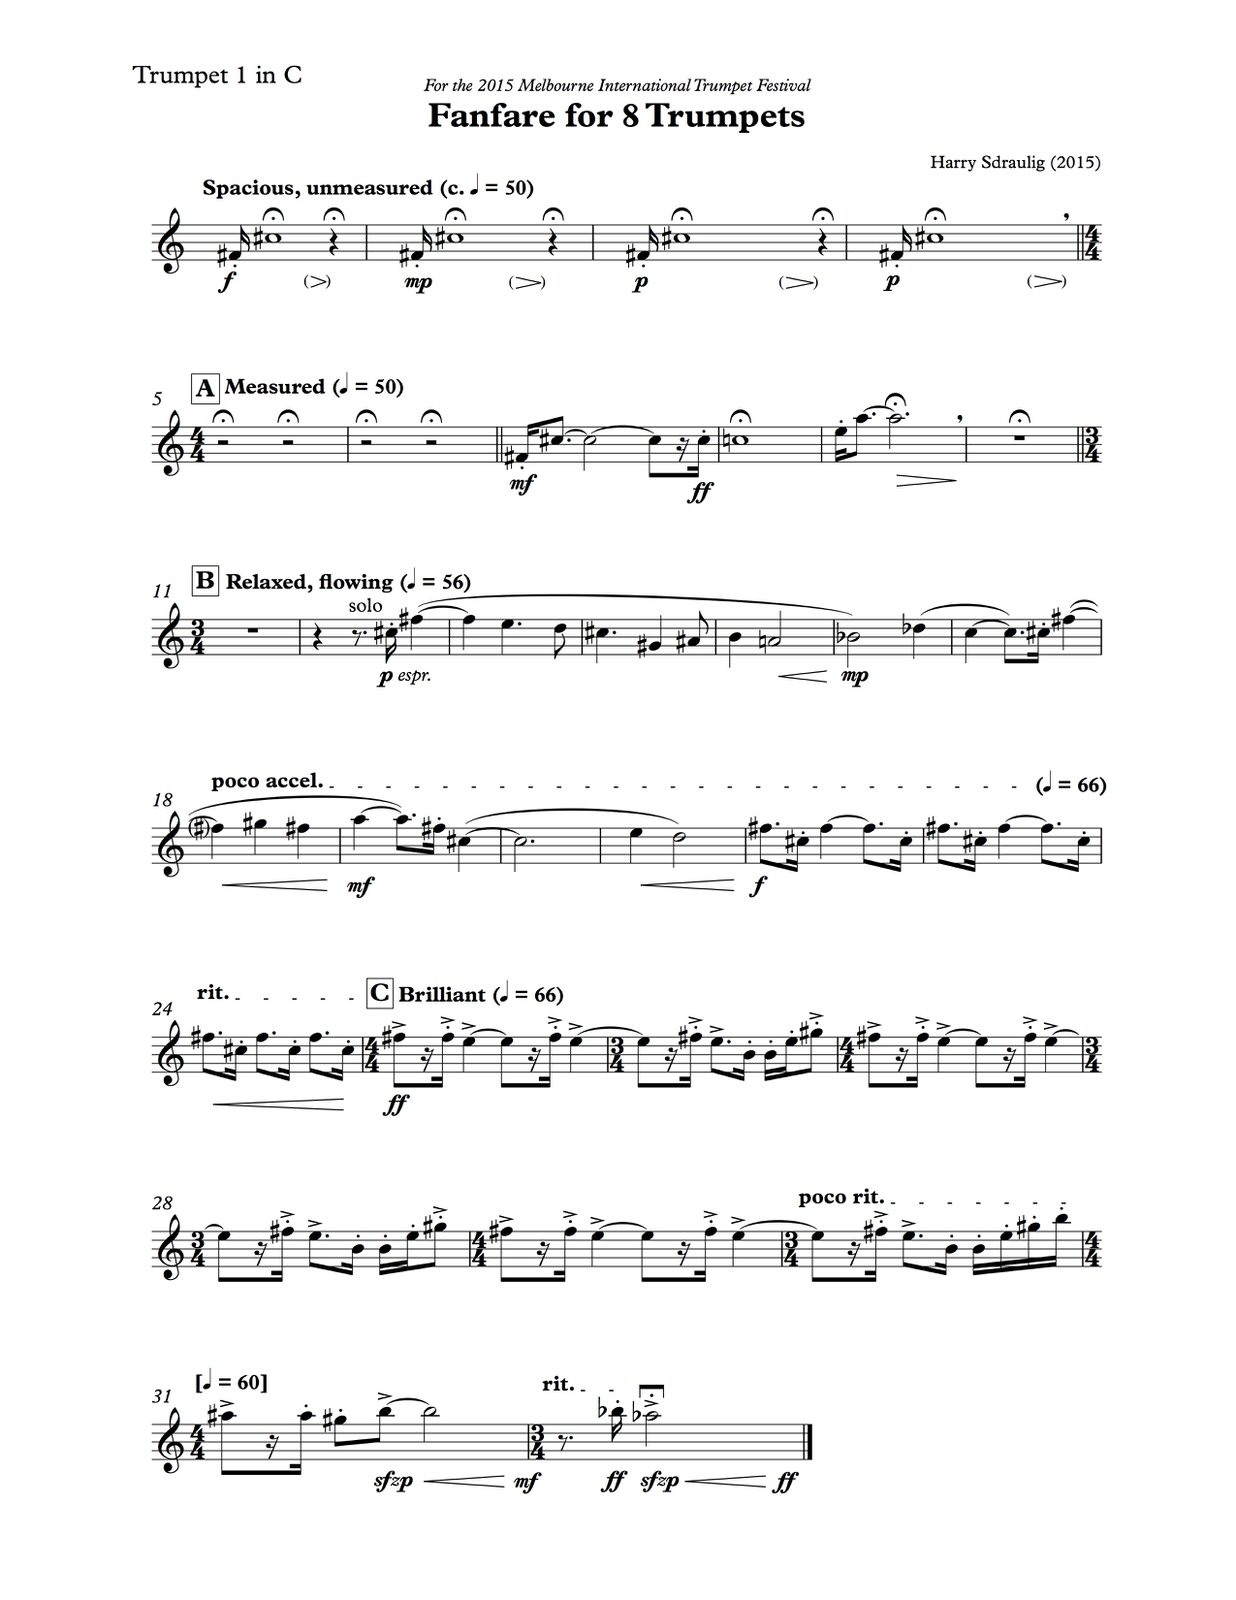 Harry Sdraulig, Fanfare for 8 Trumpets-p07